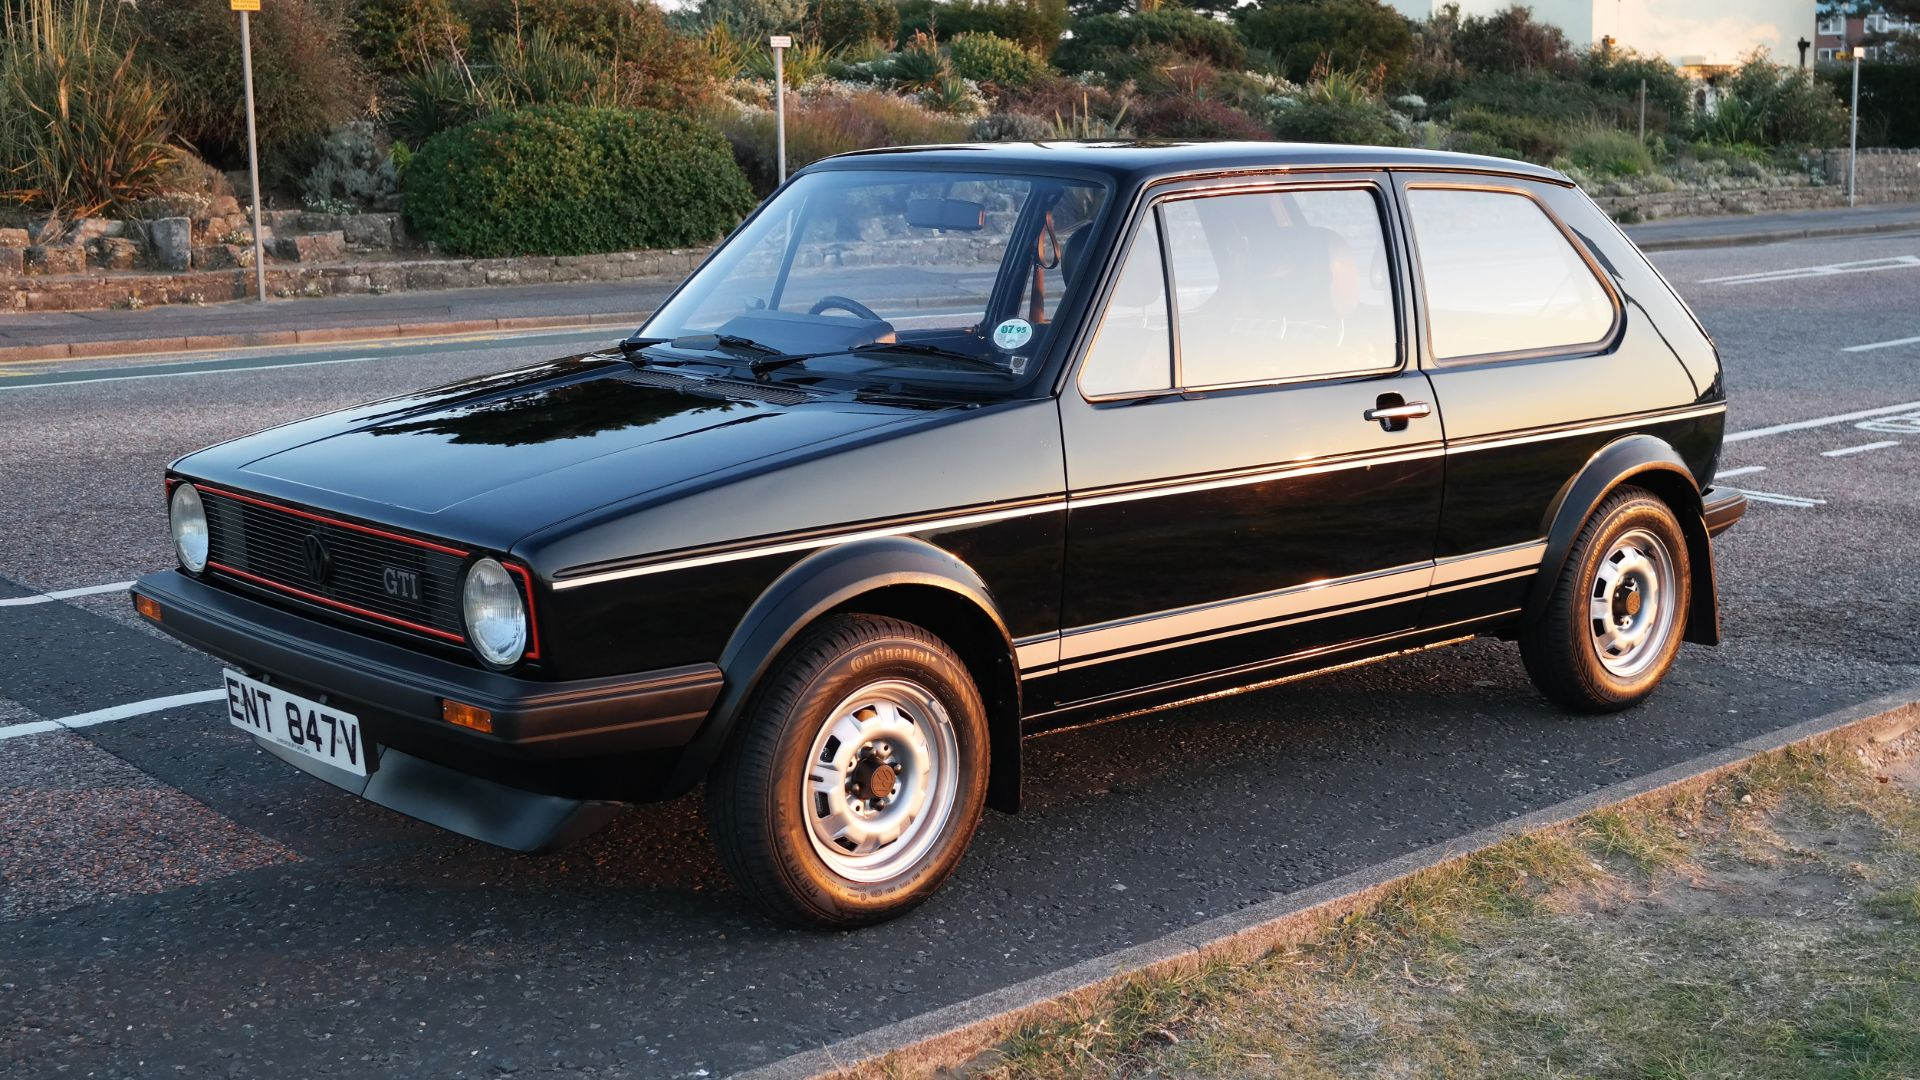 This Golf Gti Is Jeremy Clarkson S Car Of The Century And It S For Sale